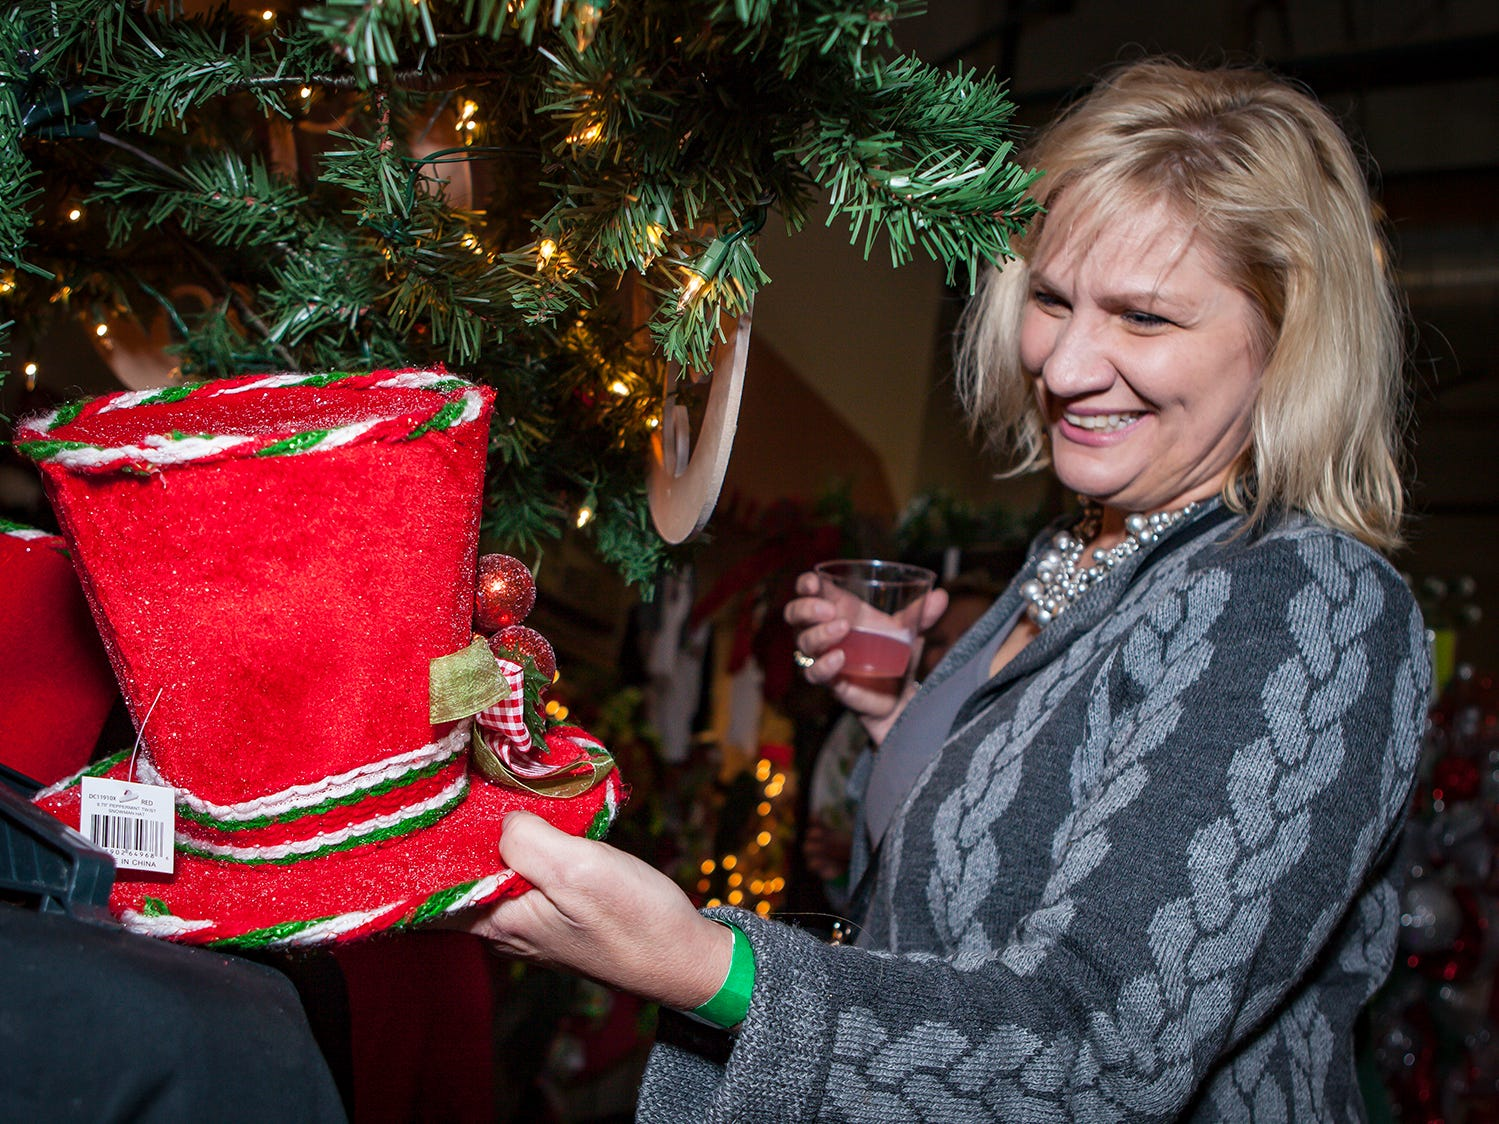 Theresa Wall at Mistletoe & Martinis, the preview party for Junior League of Murfreesboro's 2018 Hollyday Marketplace.